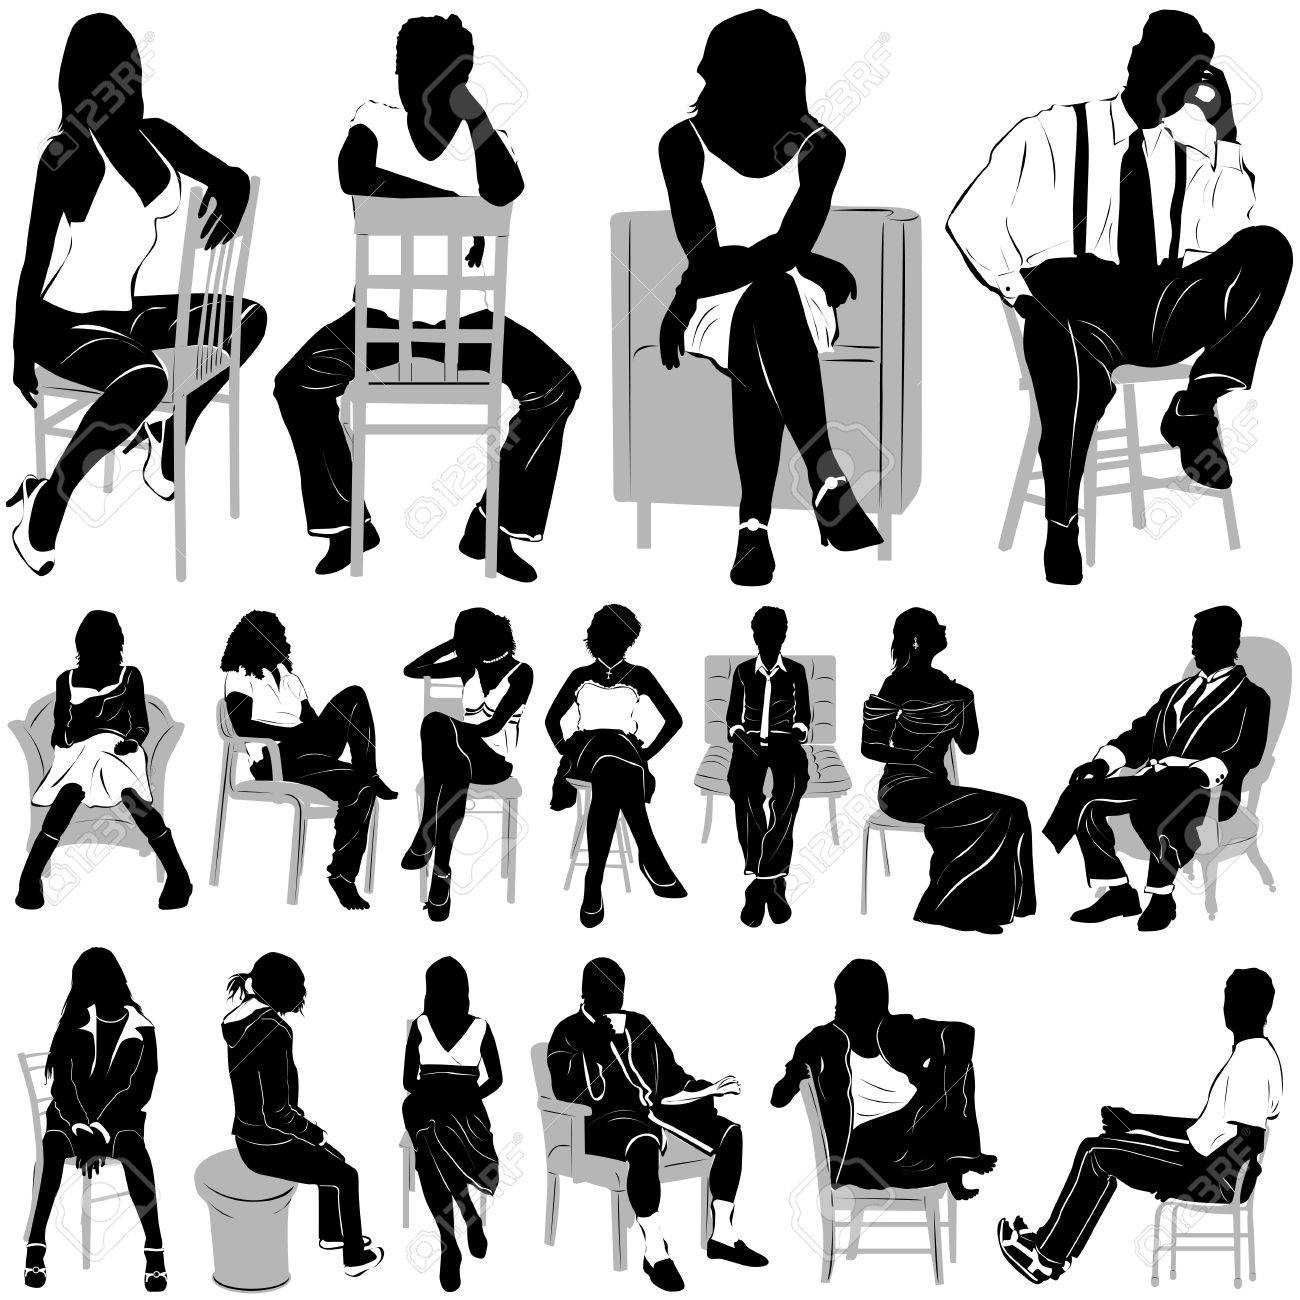 sitting people Stock Vector - 9401750